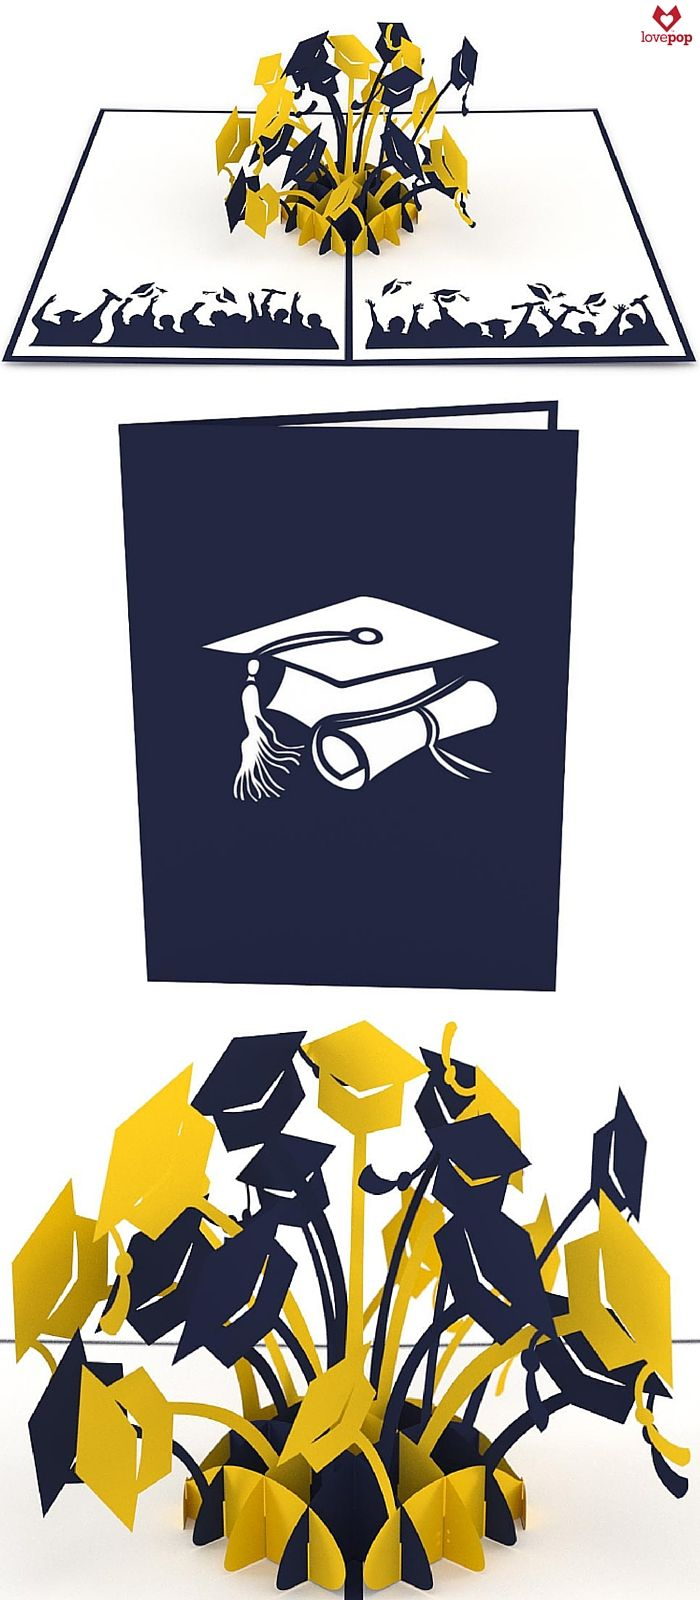 Gift your favorite grad a pop up card full of graduation hats in blue and gold. Perfect paper art for the aspiring young graduate! #Congrats #NewGrad